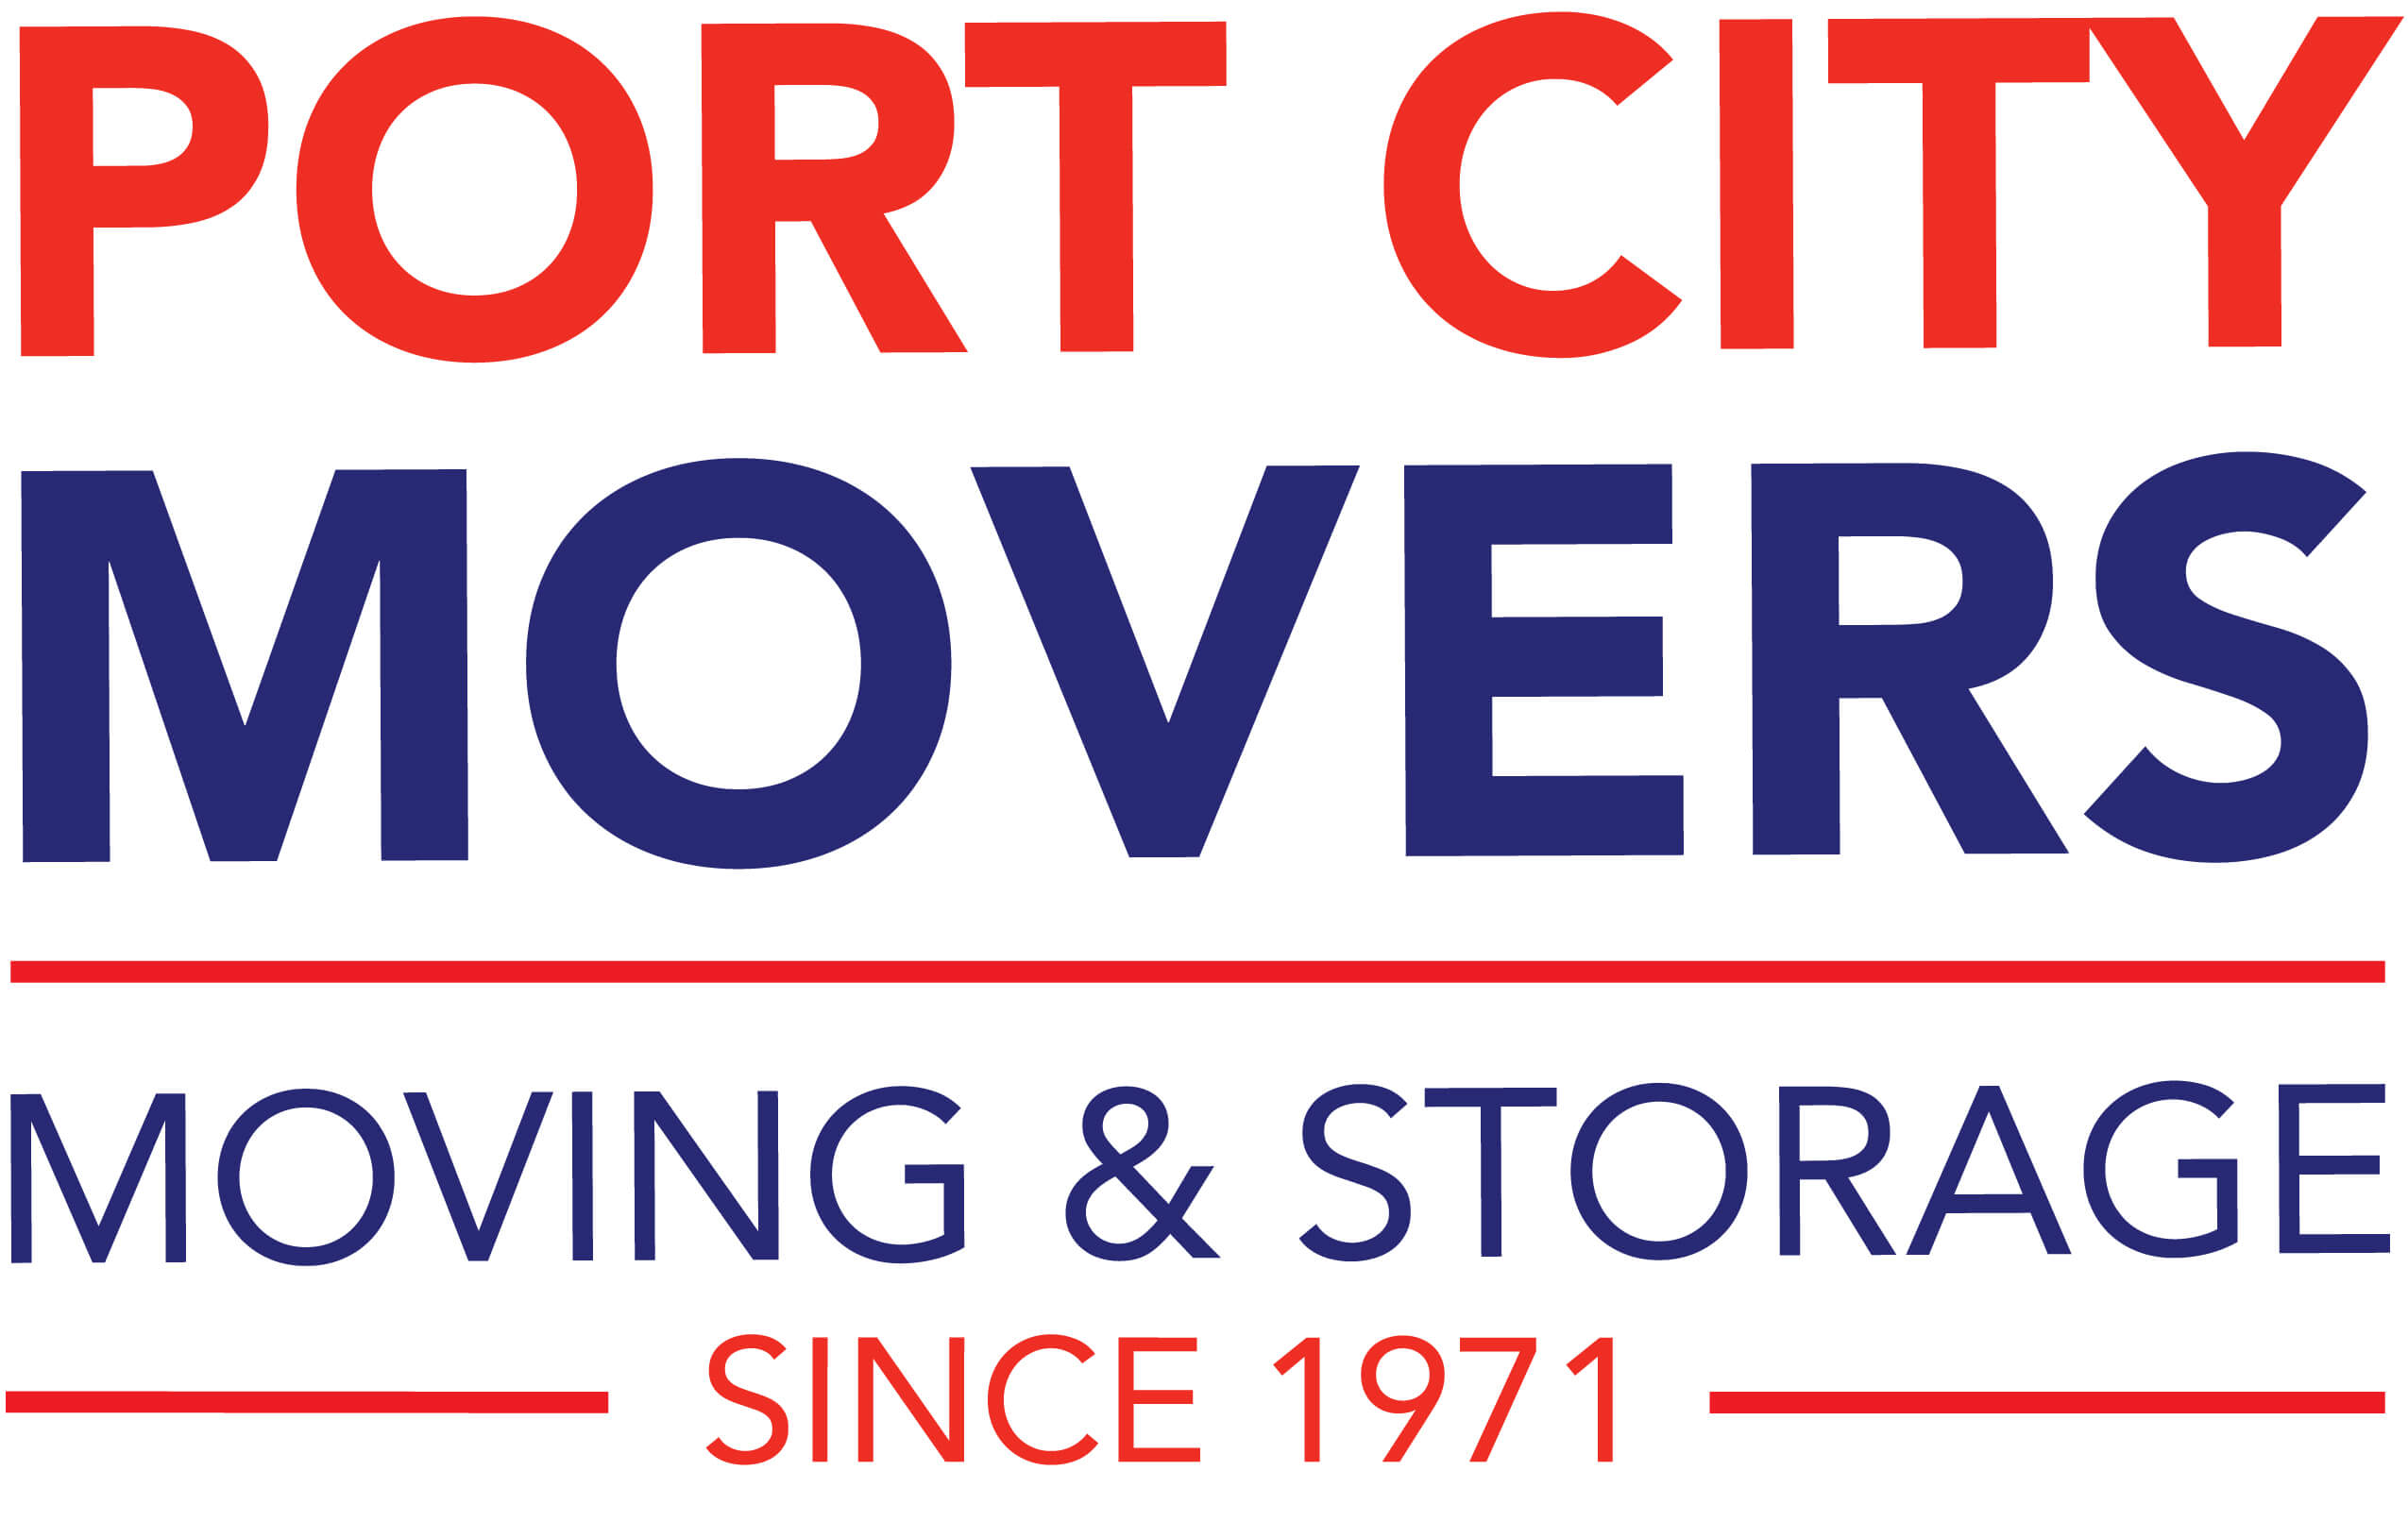 Port City Movers in North Carolina